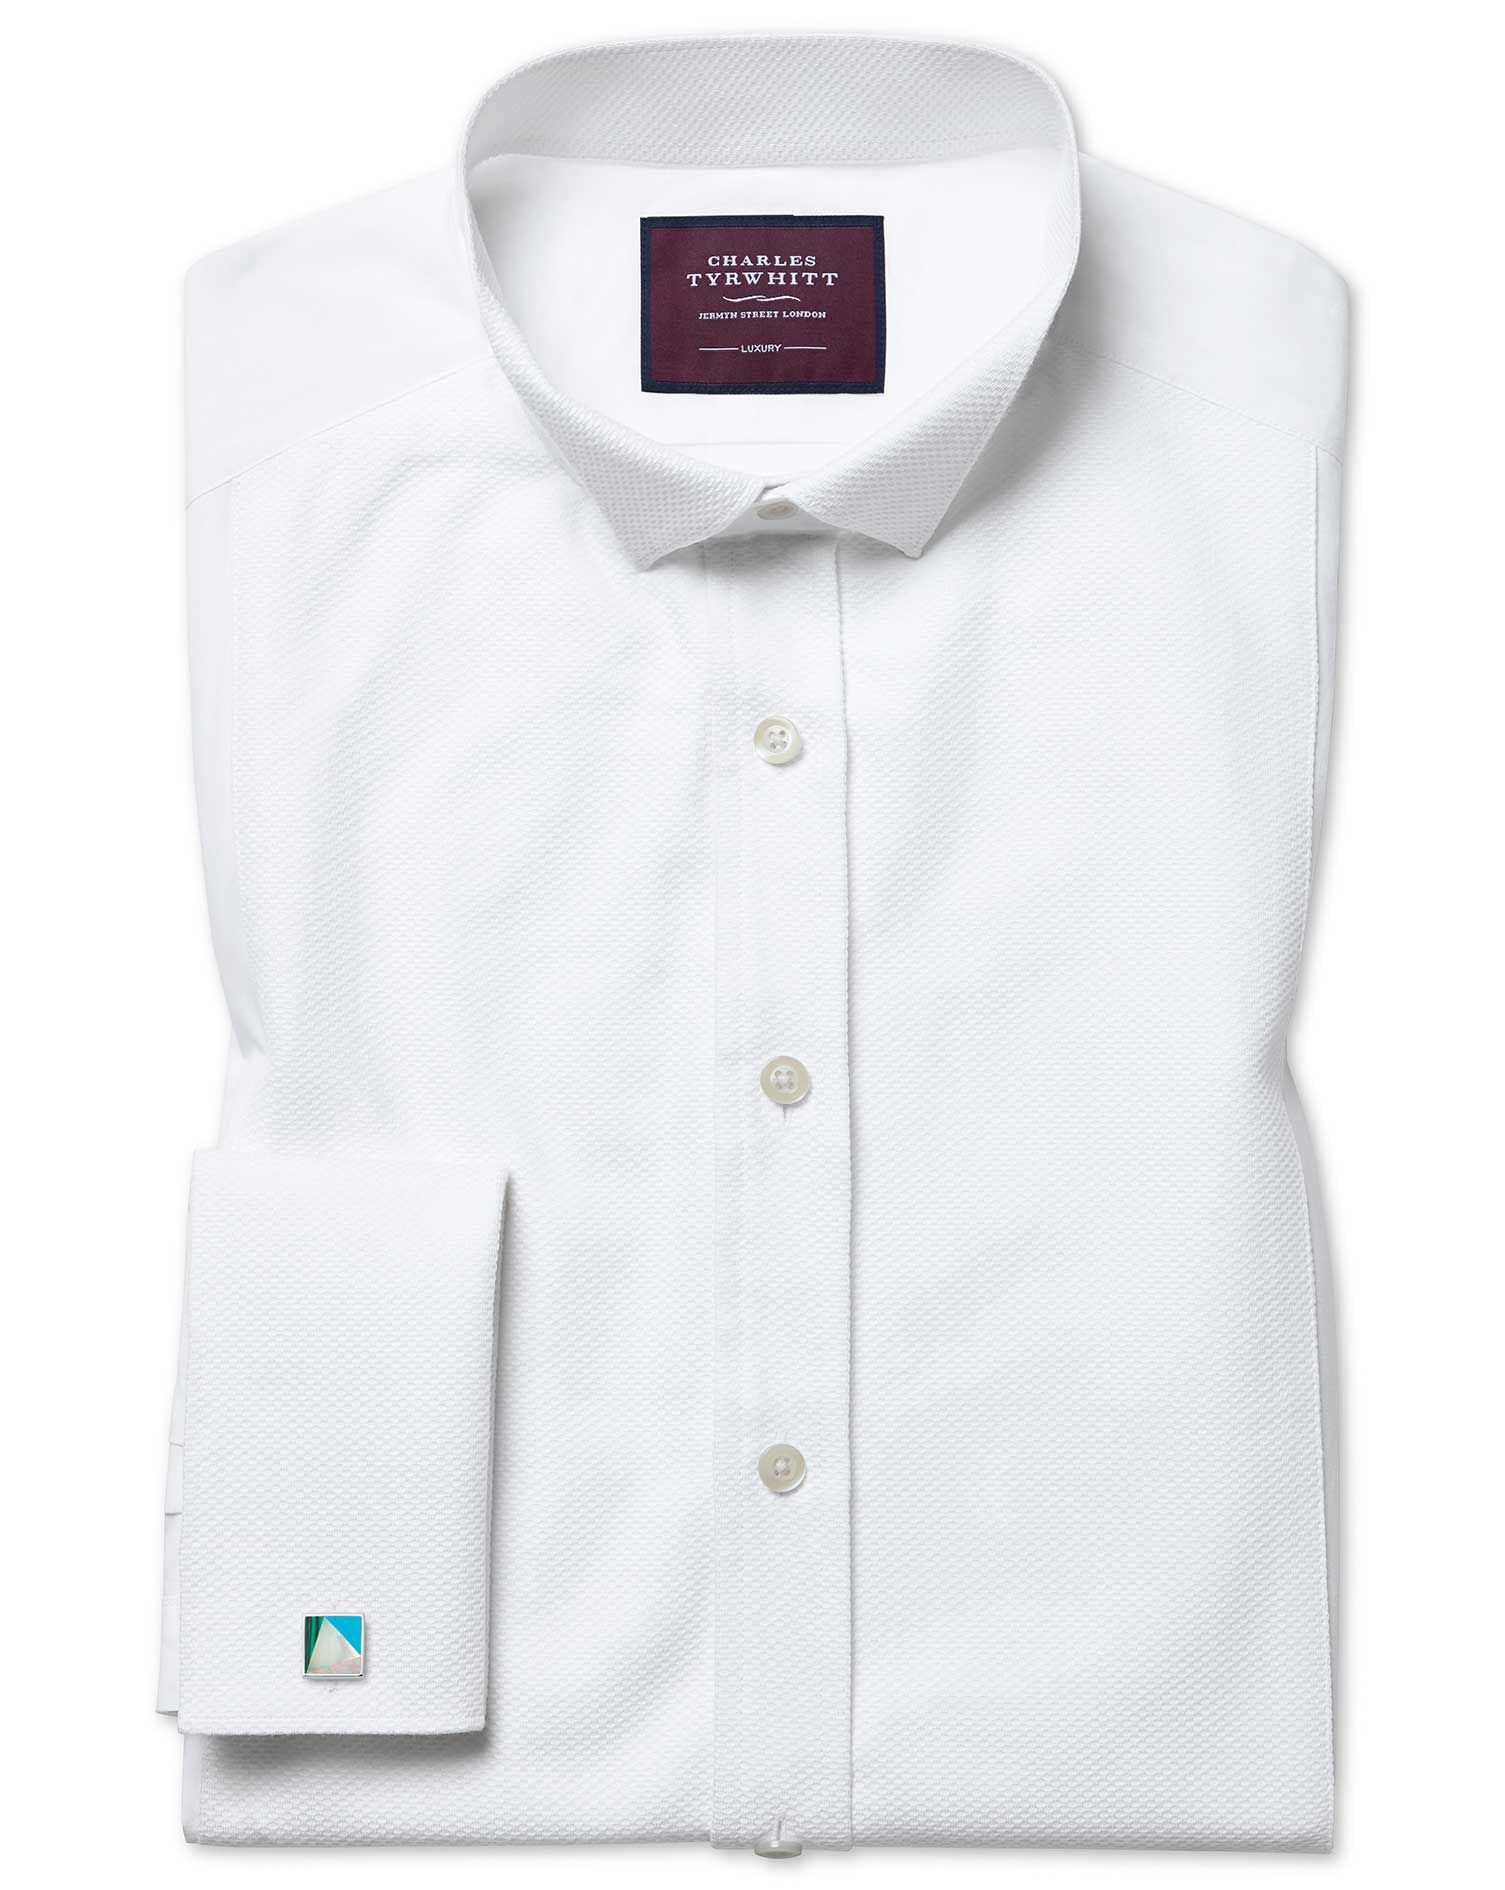 Slim Fit Wing Collar Luxury Marcella White Evening Egyptian Cotton Formal Shirt Double Cuff Size 16.